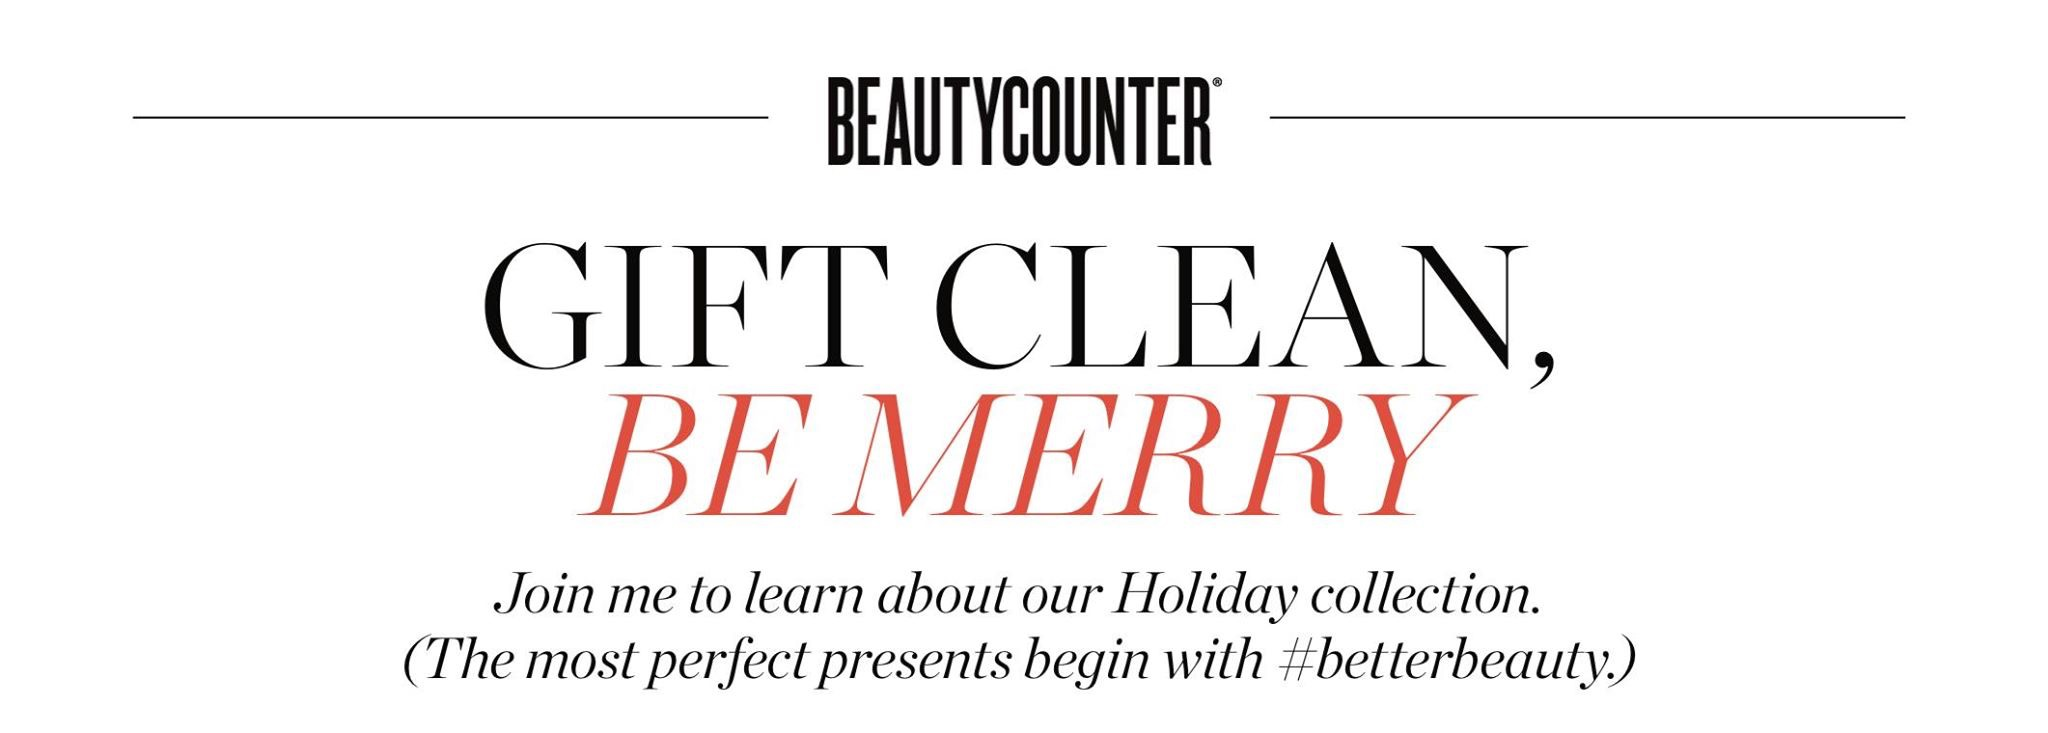 Gift Clean, Be Merry Beautycounter Holiday Event